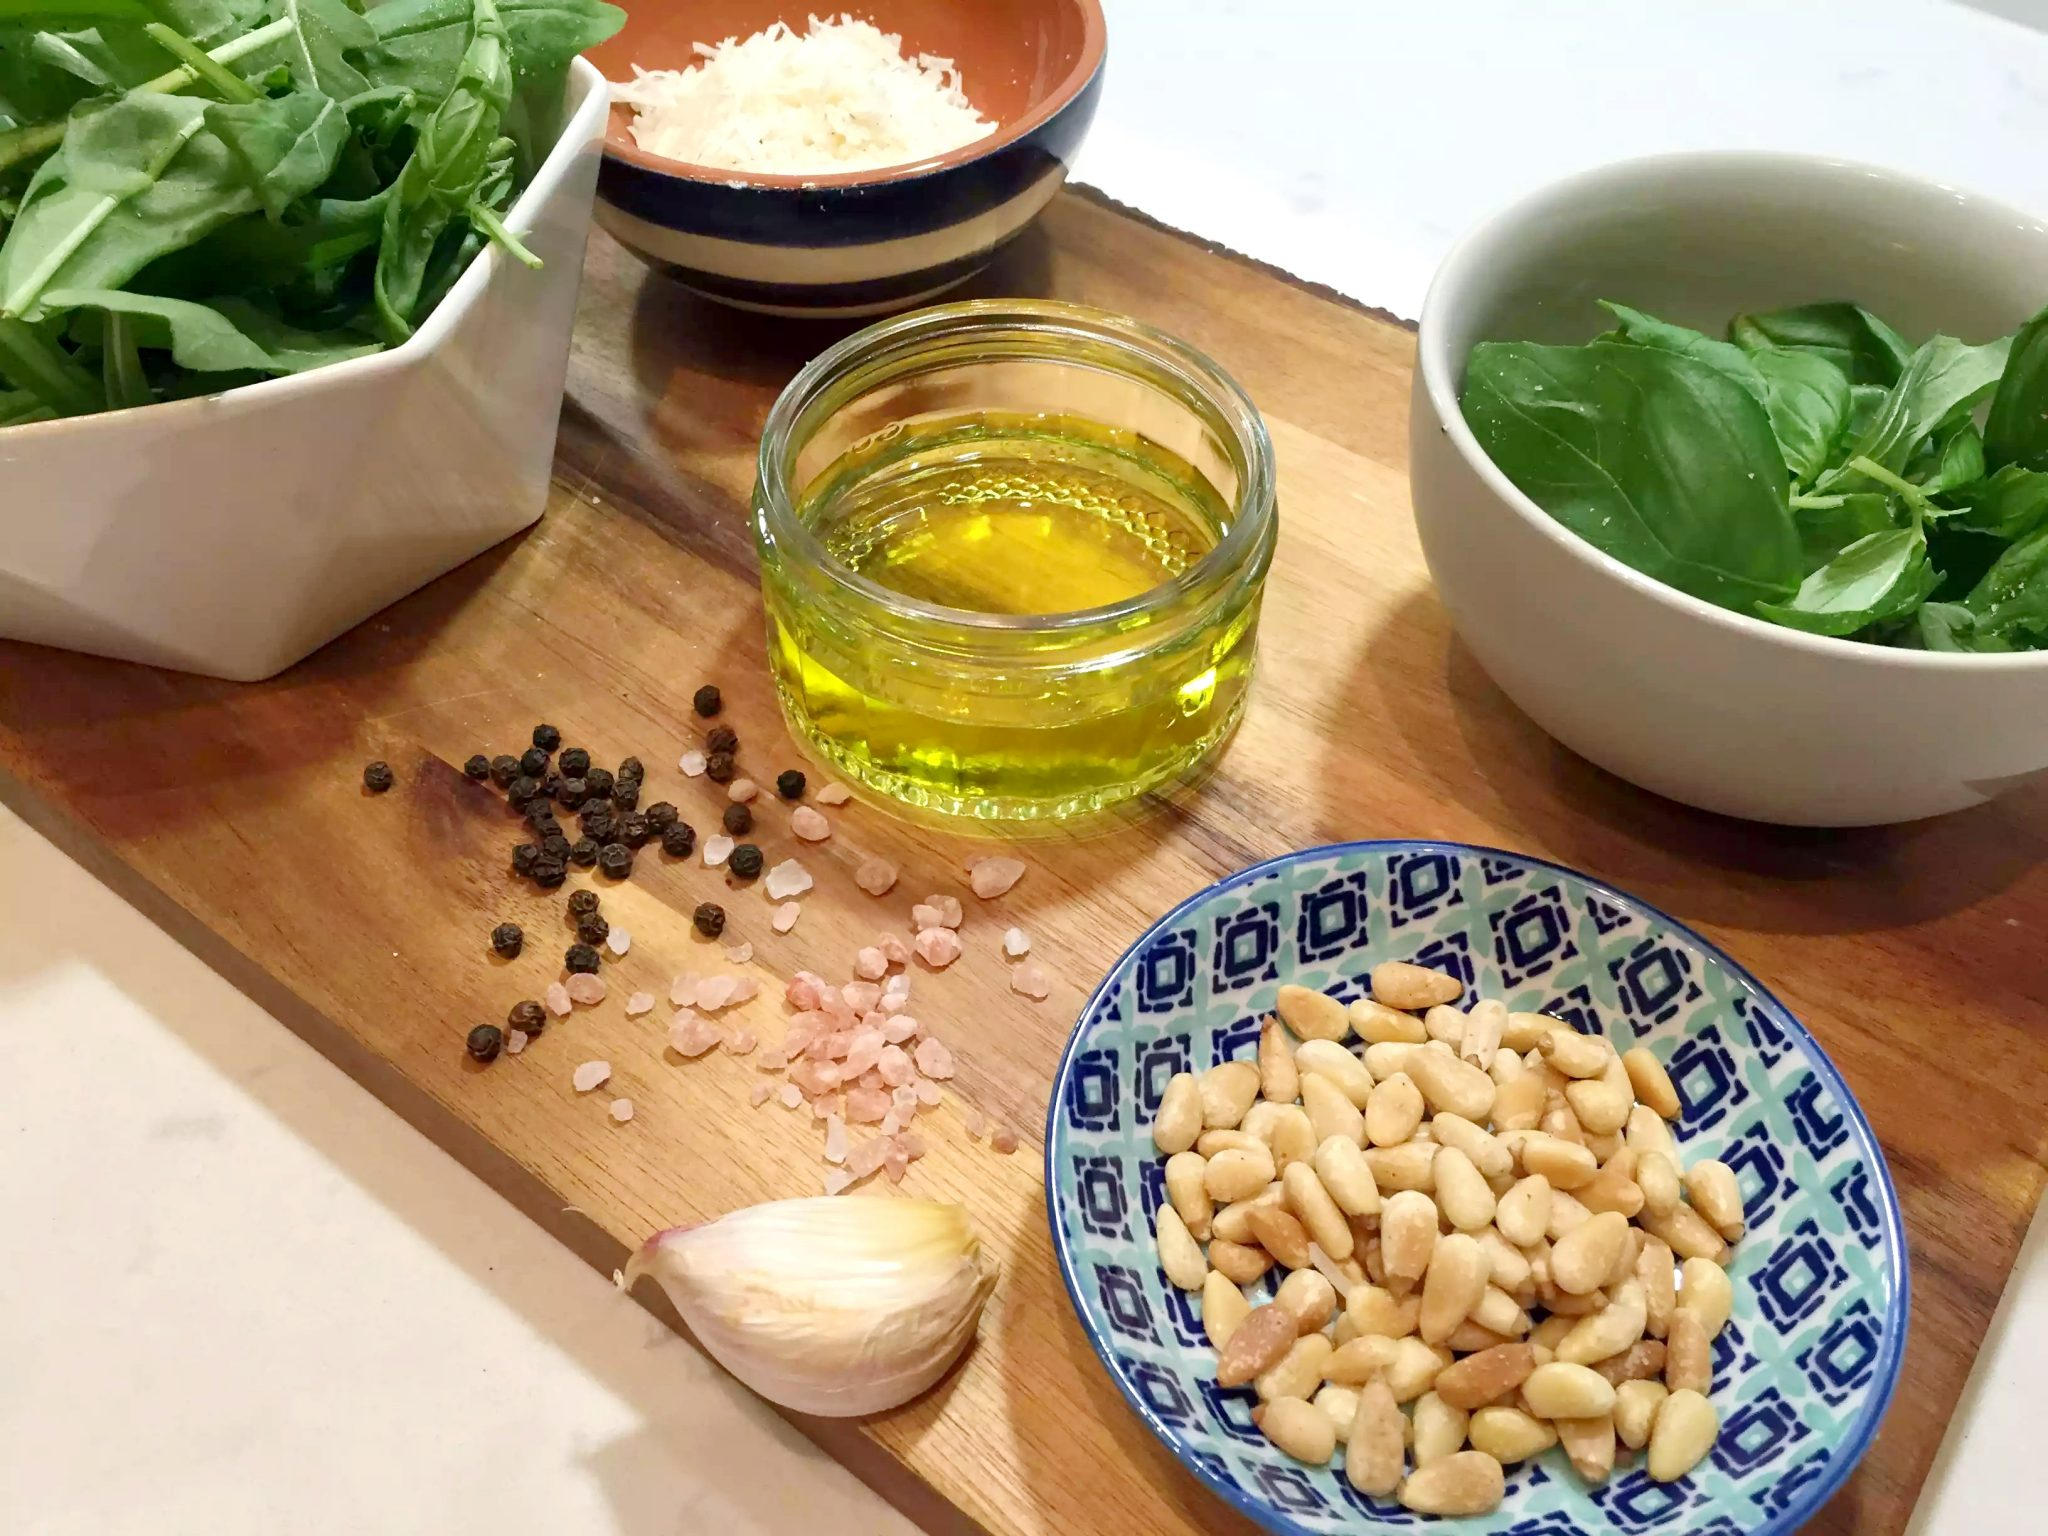 Fresh Rocket Pesto (Arugula) by Emma Eats & Explores - SCD, Paleo, Grain-Free, gluten-Free, Sugar-Free, Vegetarian